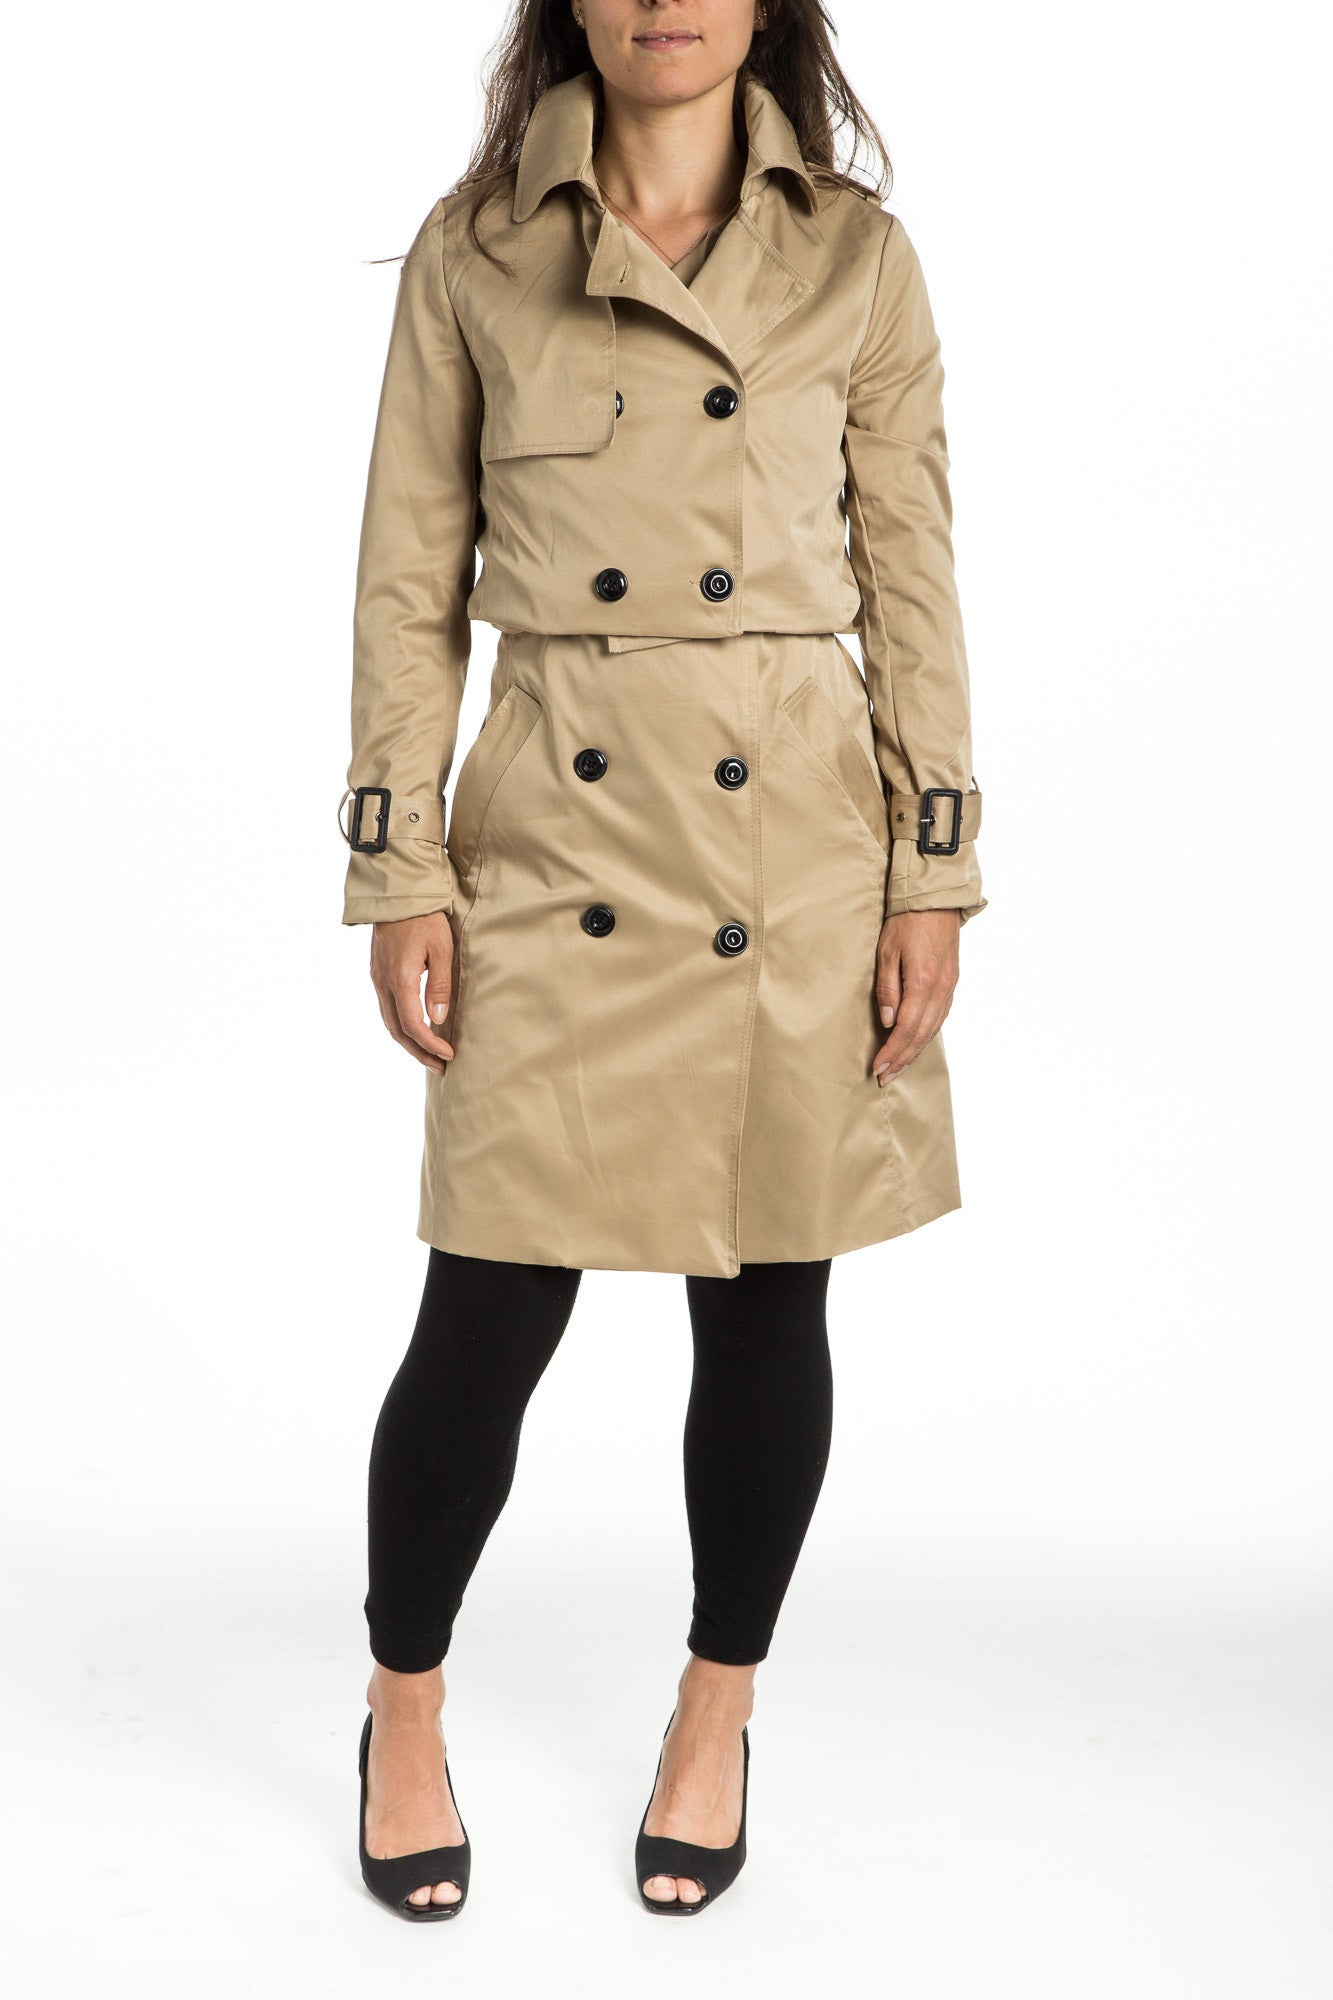 AMANI 3-in-1 Trench Coat - 2 colors available - Mademoiselle Veste - b0b0919e66